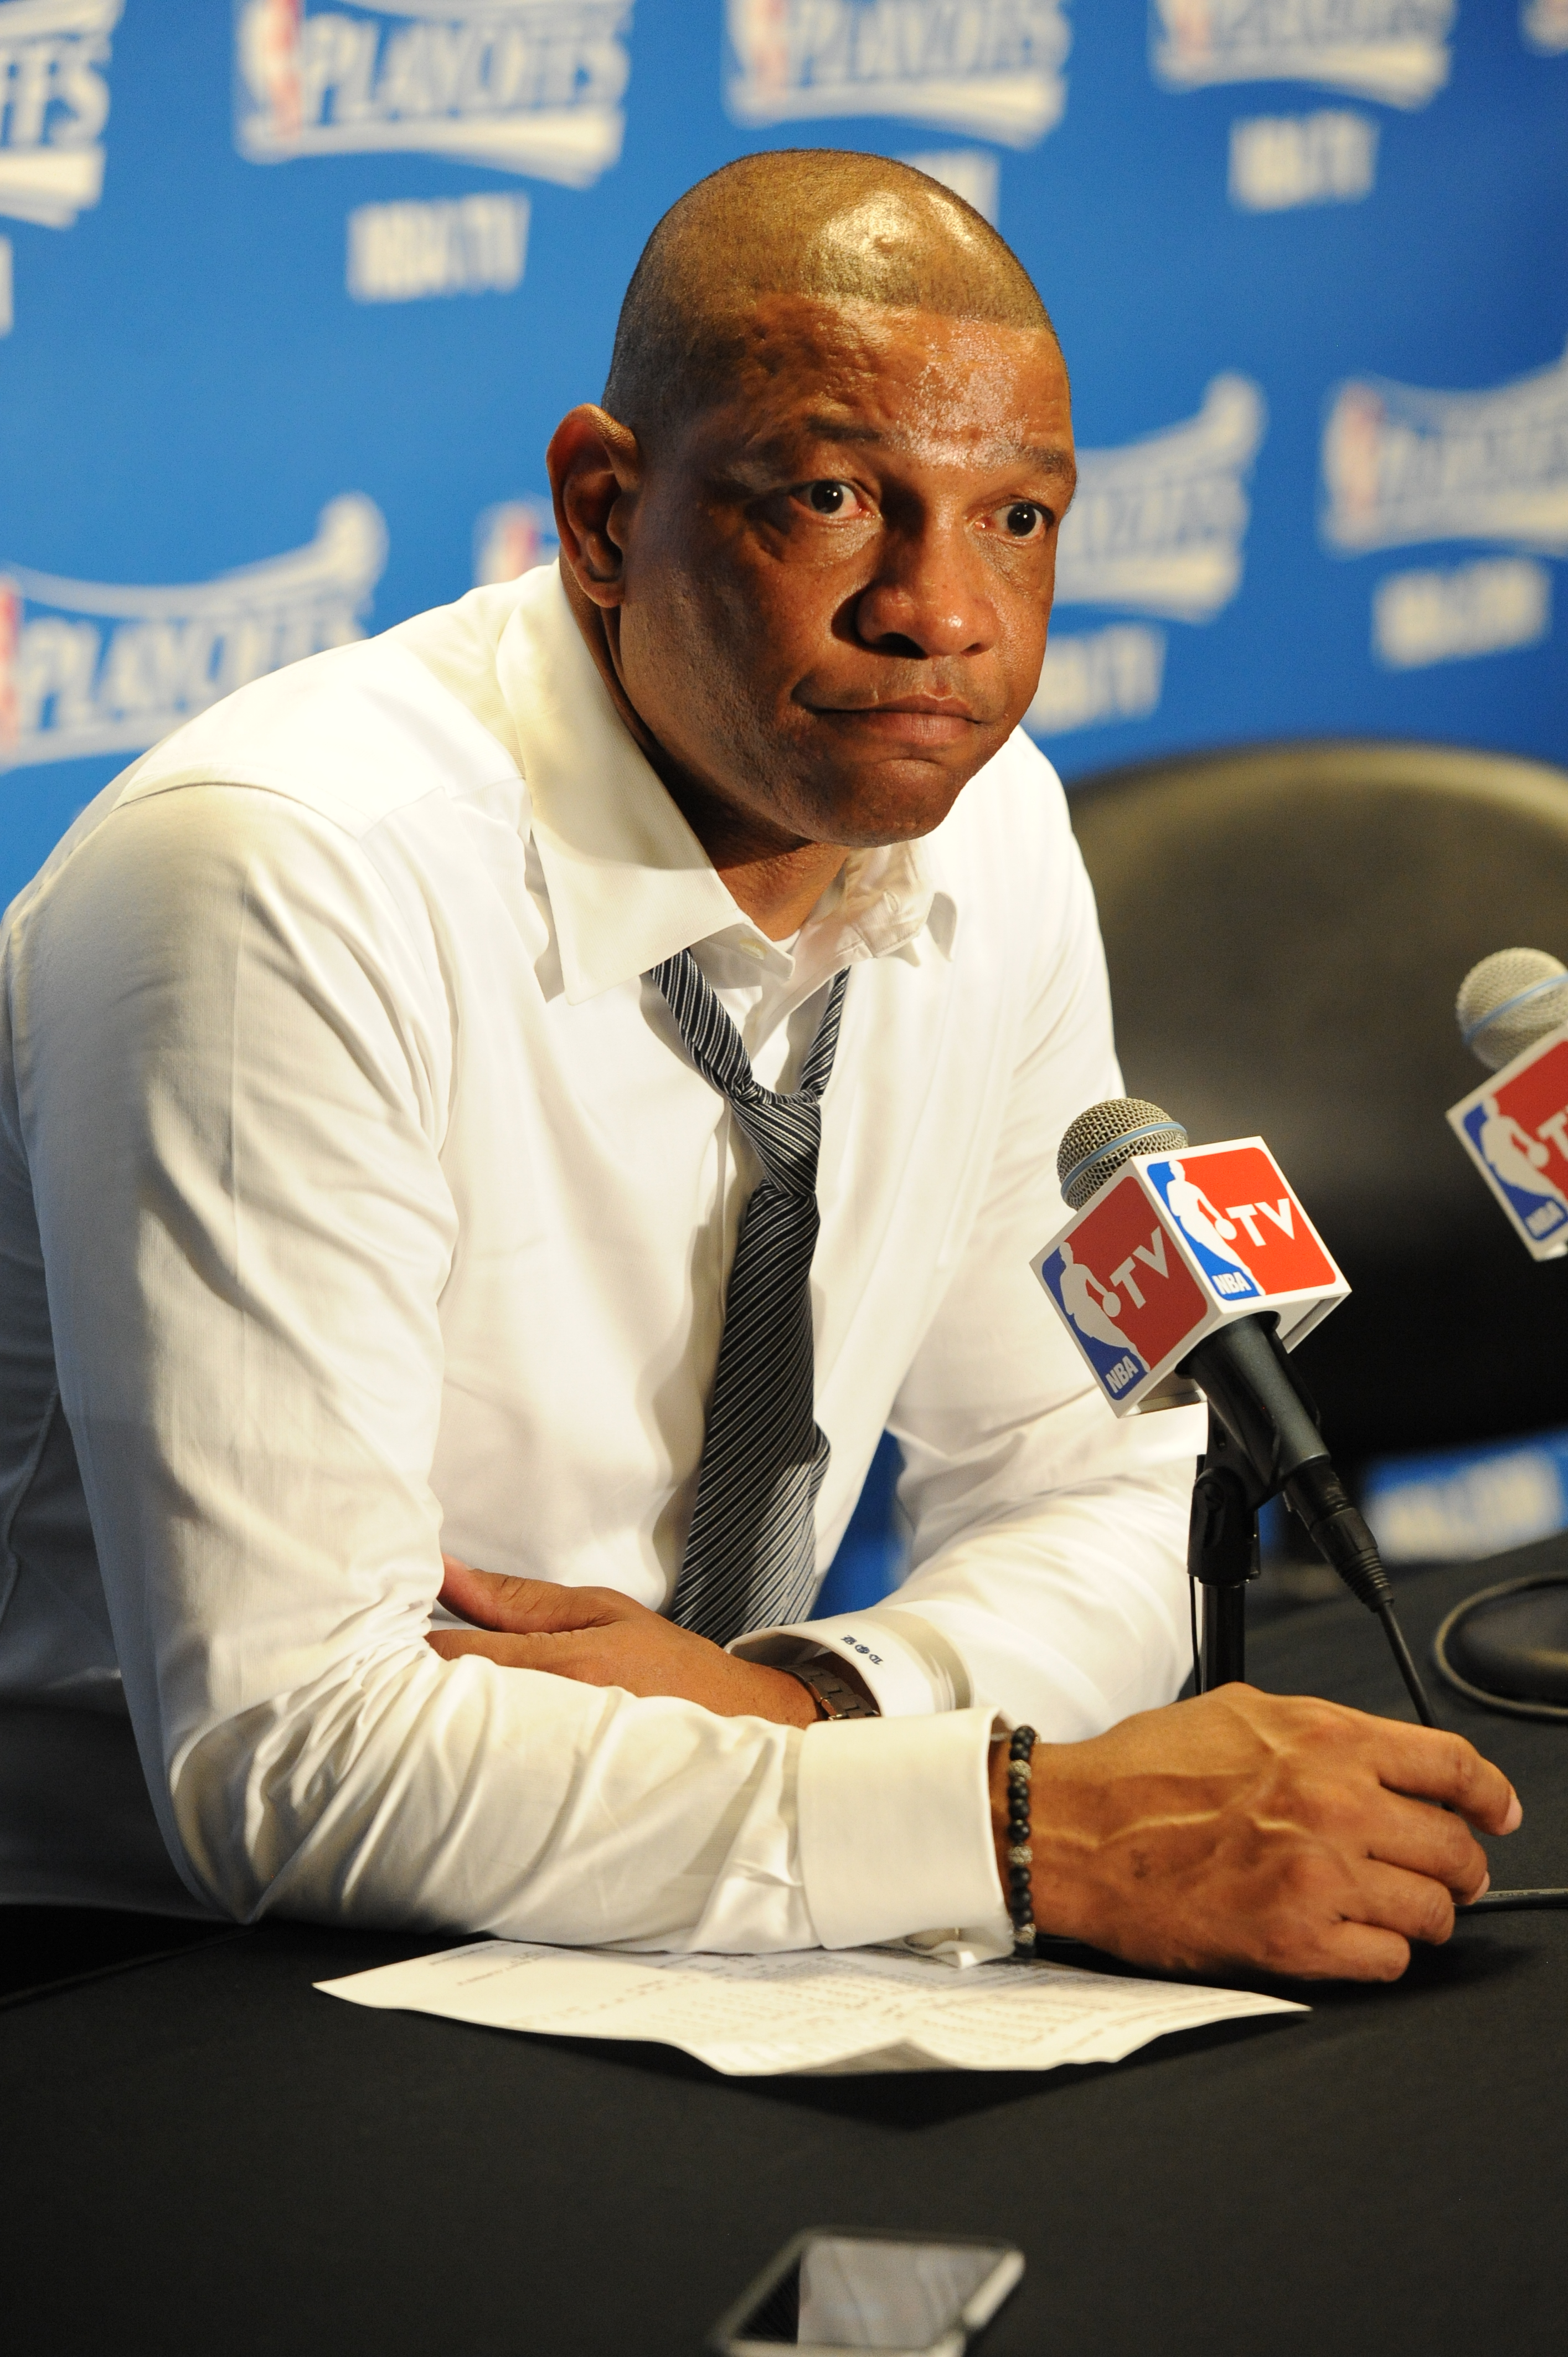 LOS ANGELES, CA - APRIL 28:  Head Coach Doc Rivers of the Los Angeles Clippers speaks to the media after Game Five of the Western Conference Quarterfinals against the San Antonio Spurs during the 2015 NBA Playoffs on April 28, 2015 at Staples Center in Lo